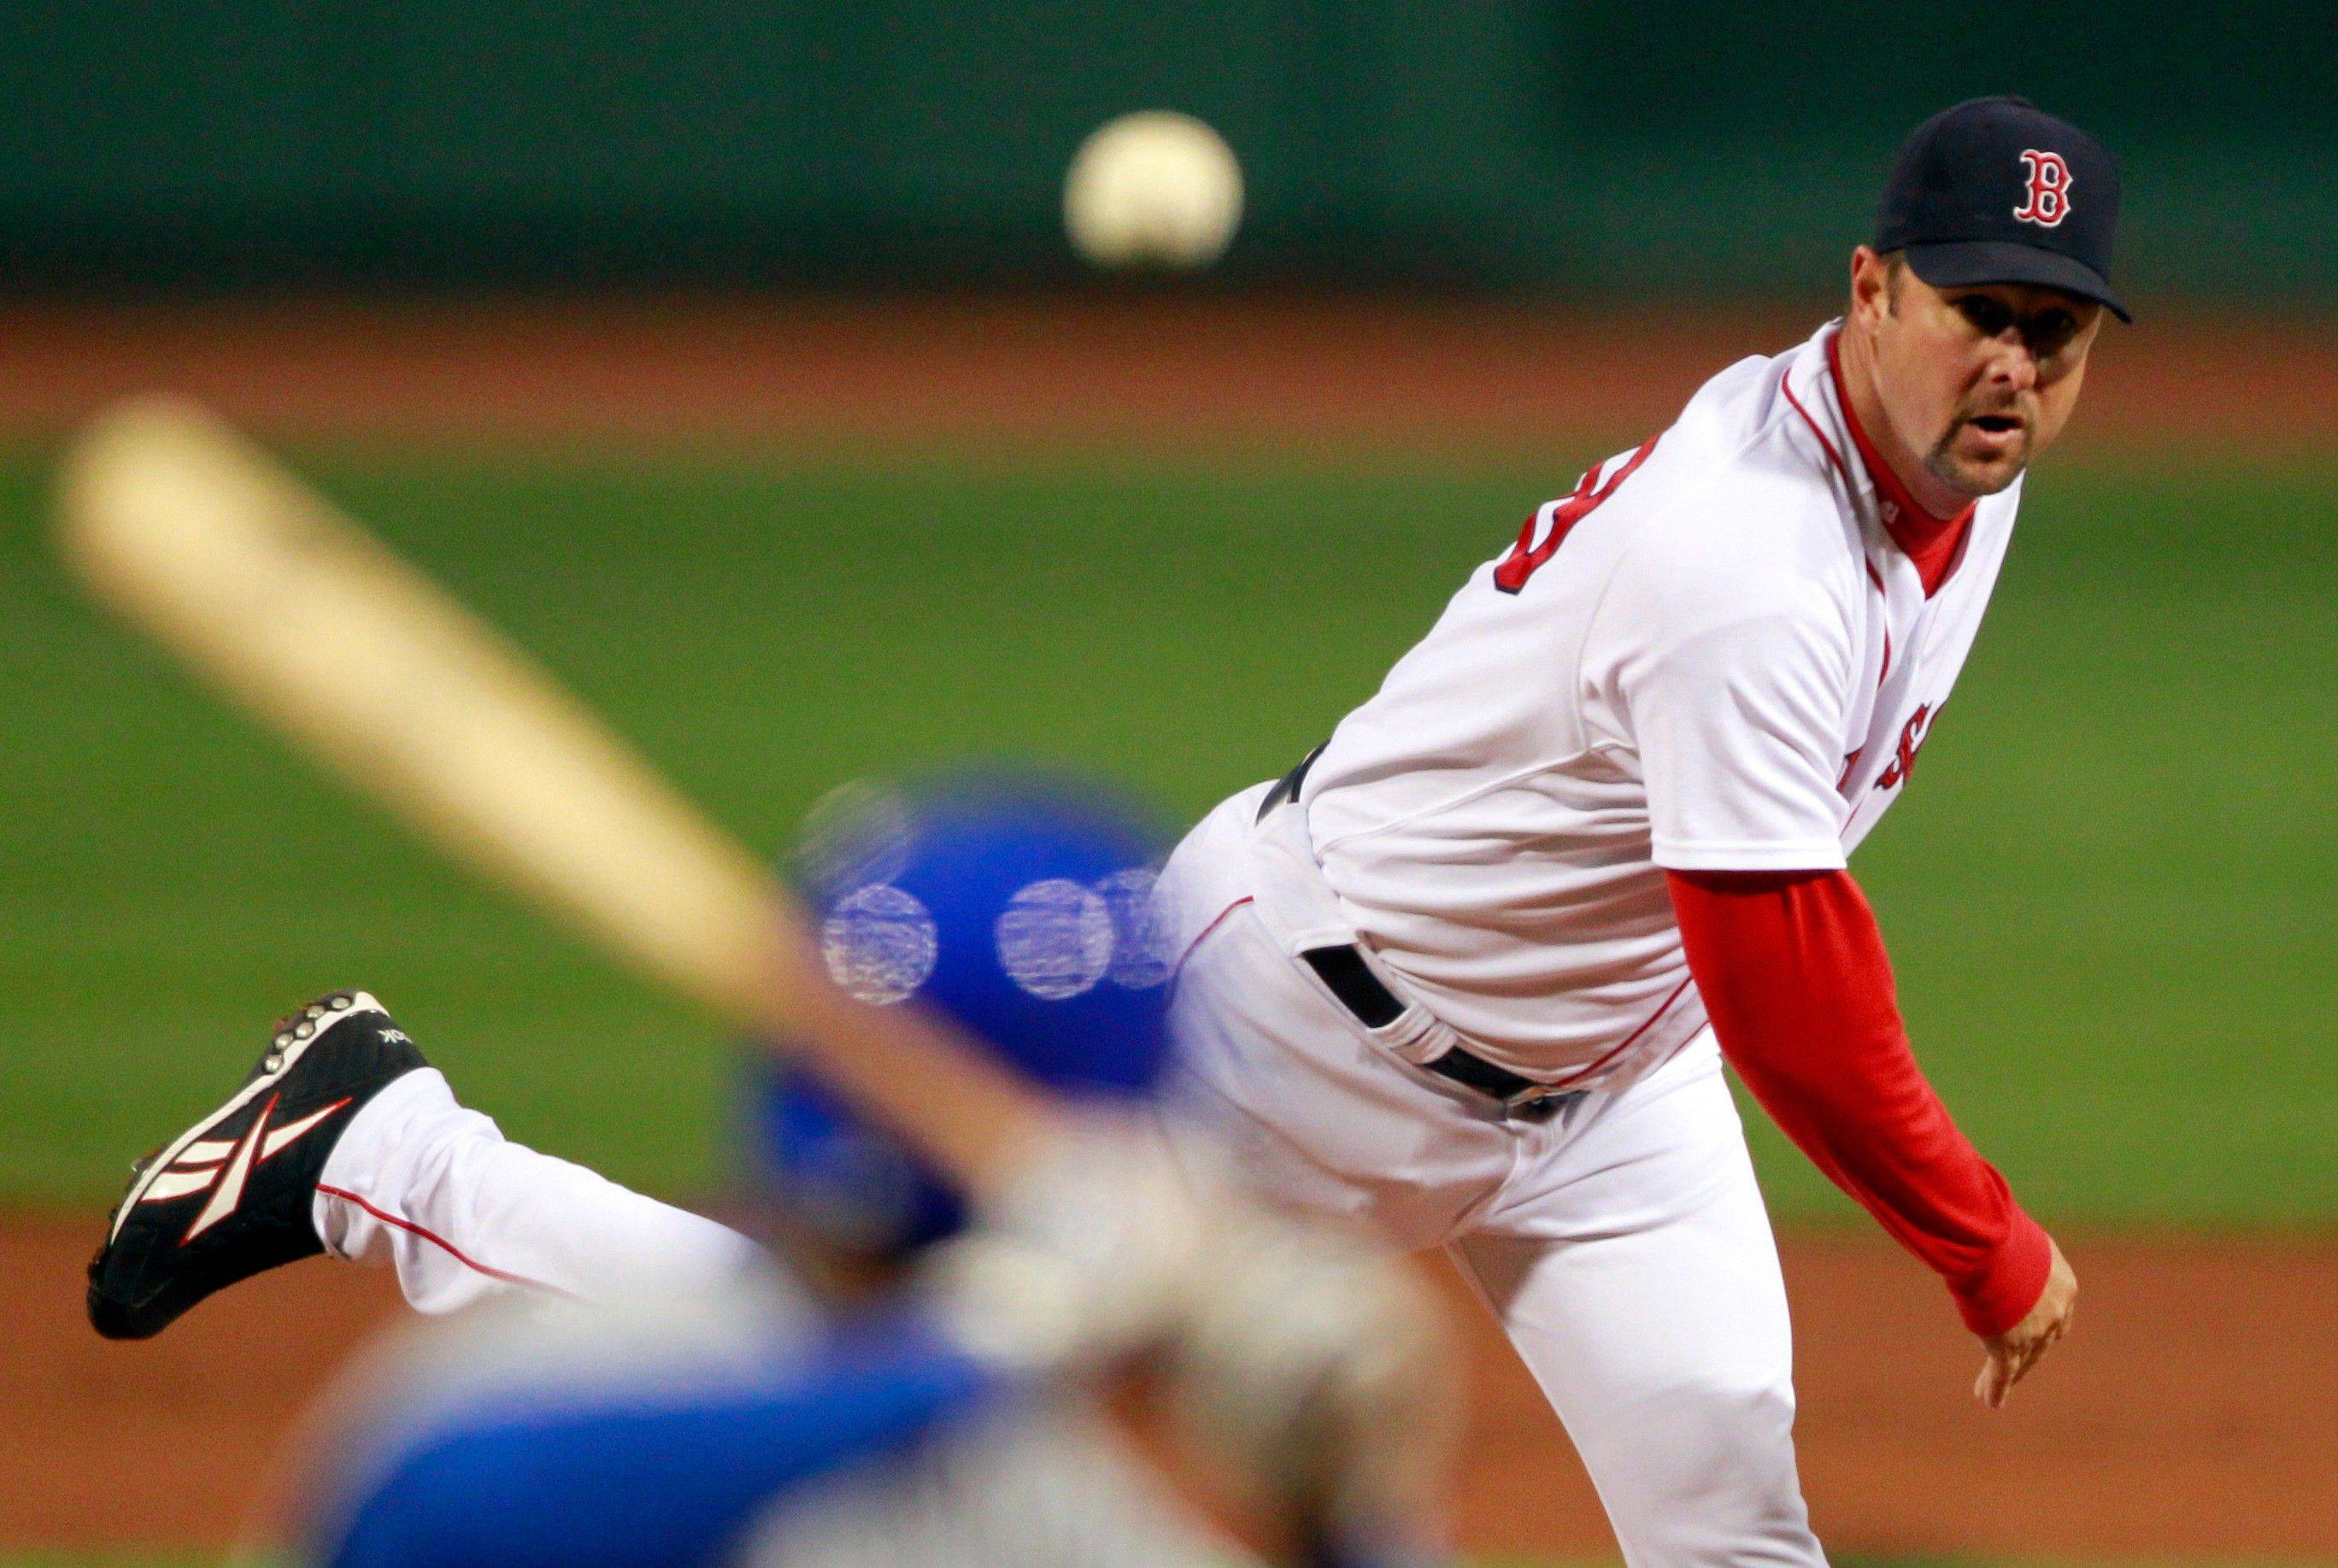 Cubs batters didn't draw a single walk against Red Sox knuckleballer Tim Wakefield, above, and two relievers in Sunday night's 5-1 loss to the Red Sox.